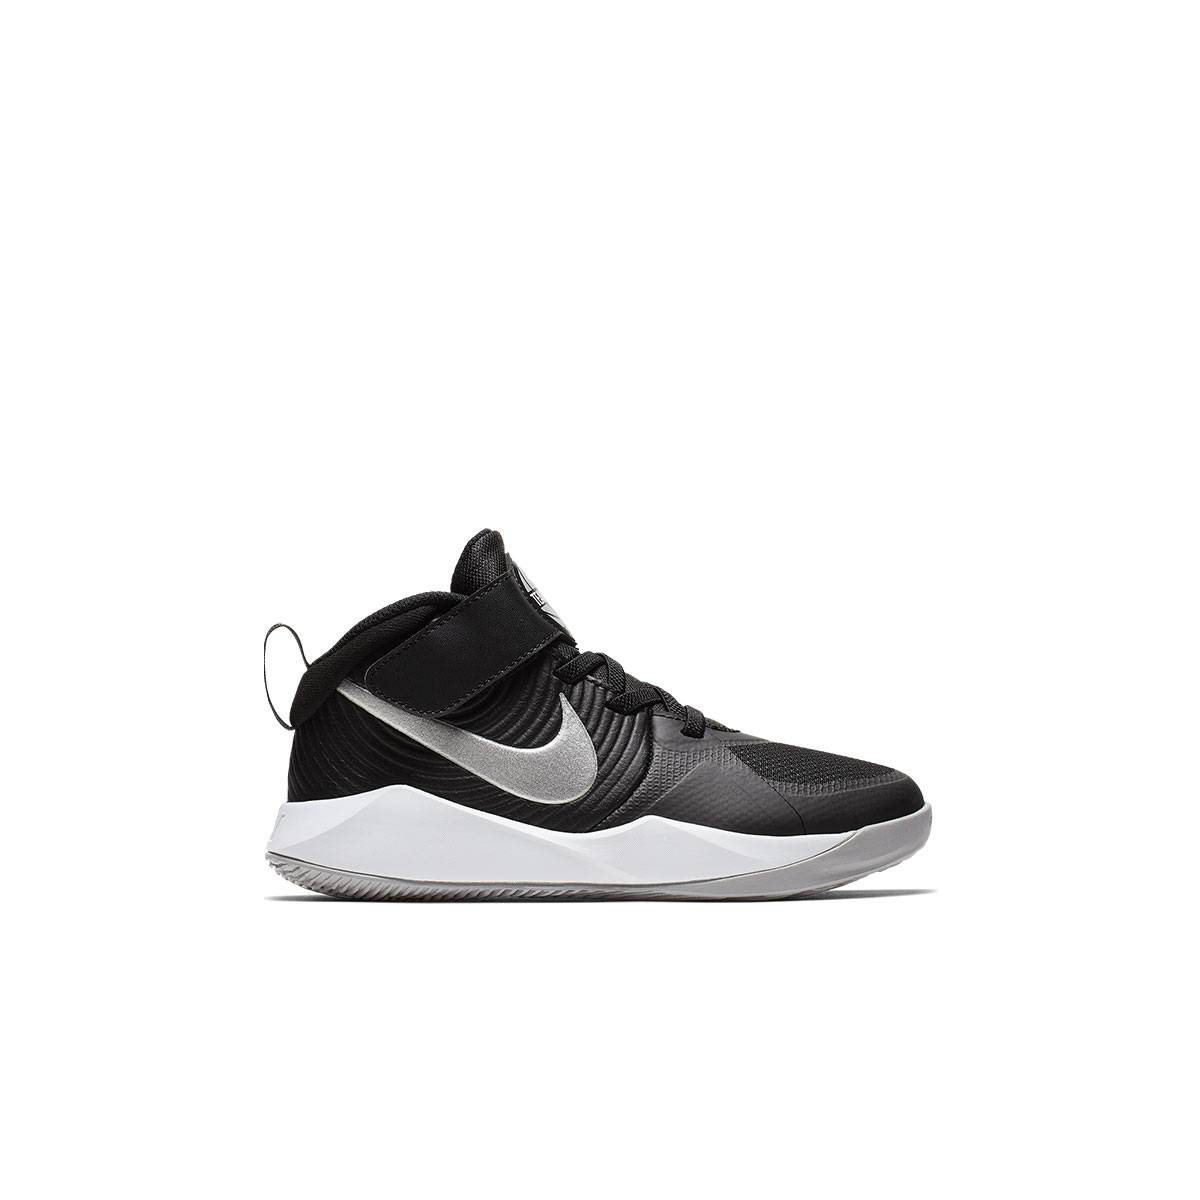 Nike Scarpa JUNIOR Team Hustle D Nere - 28 - Bambino